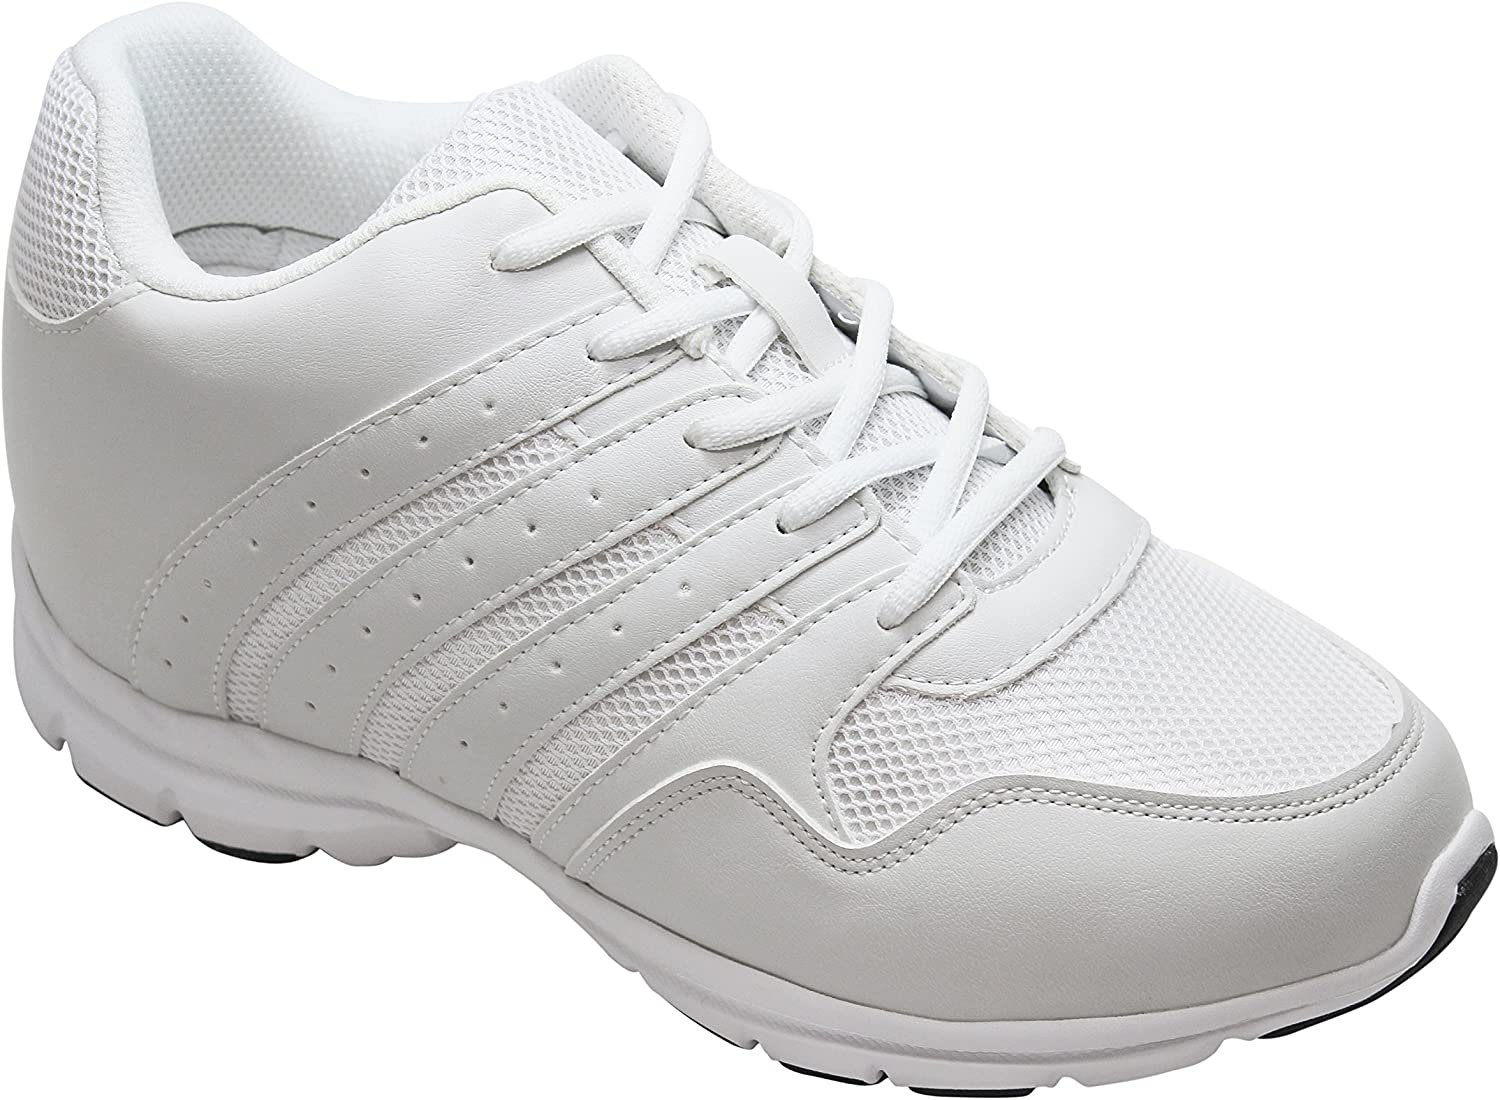 White Leather/Mesh Lace-up Lightweight